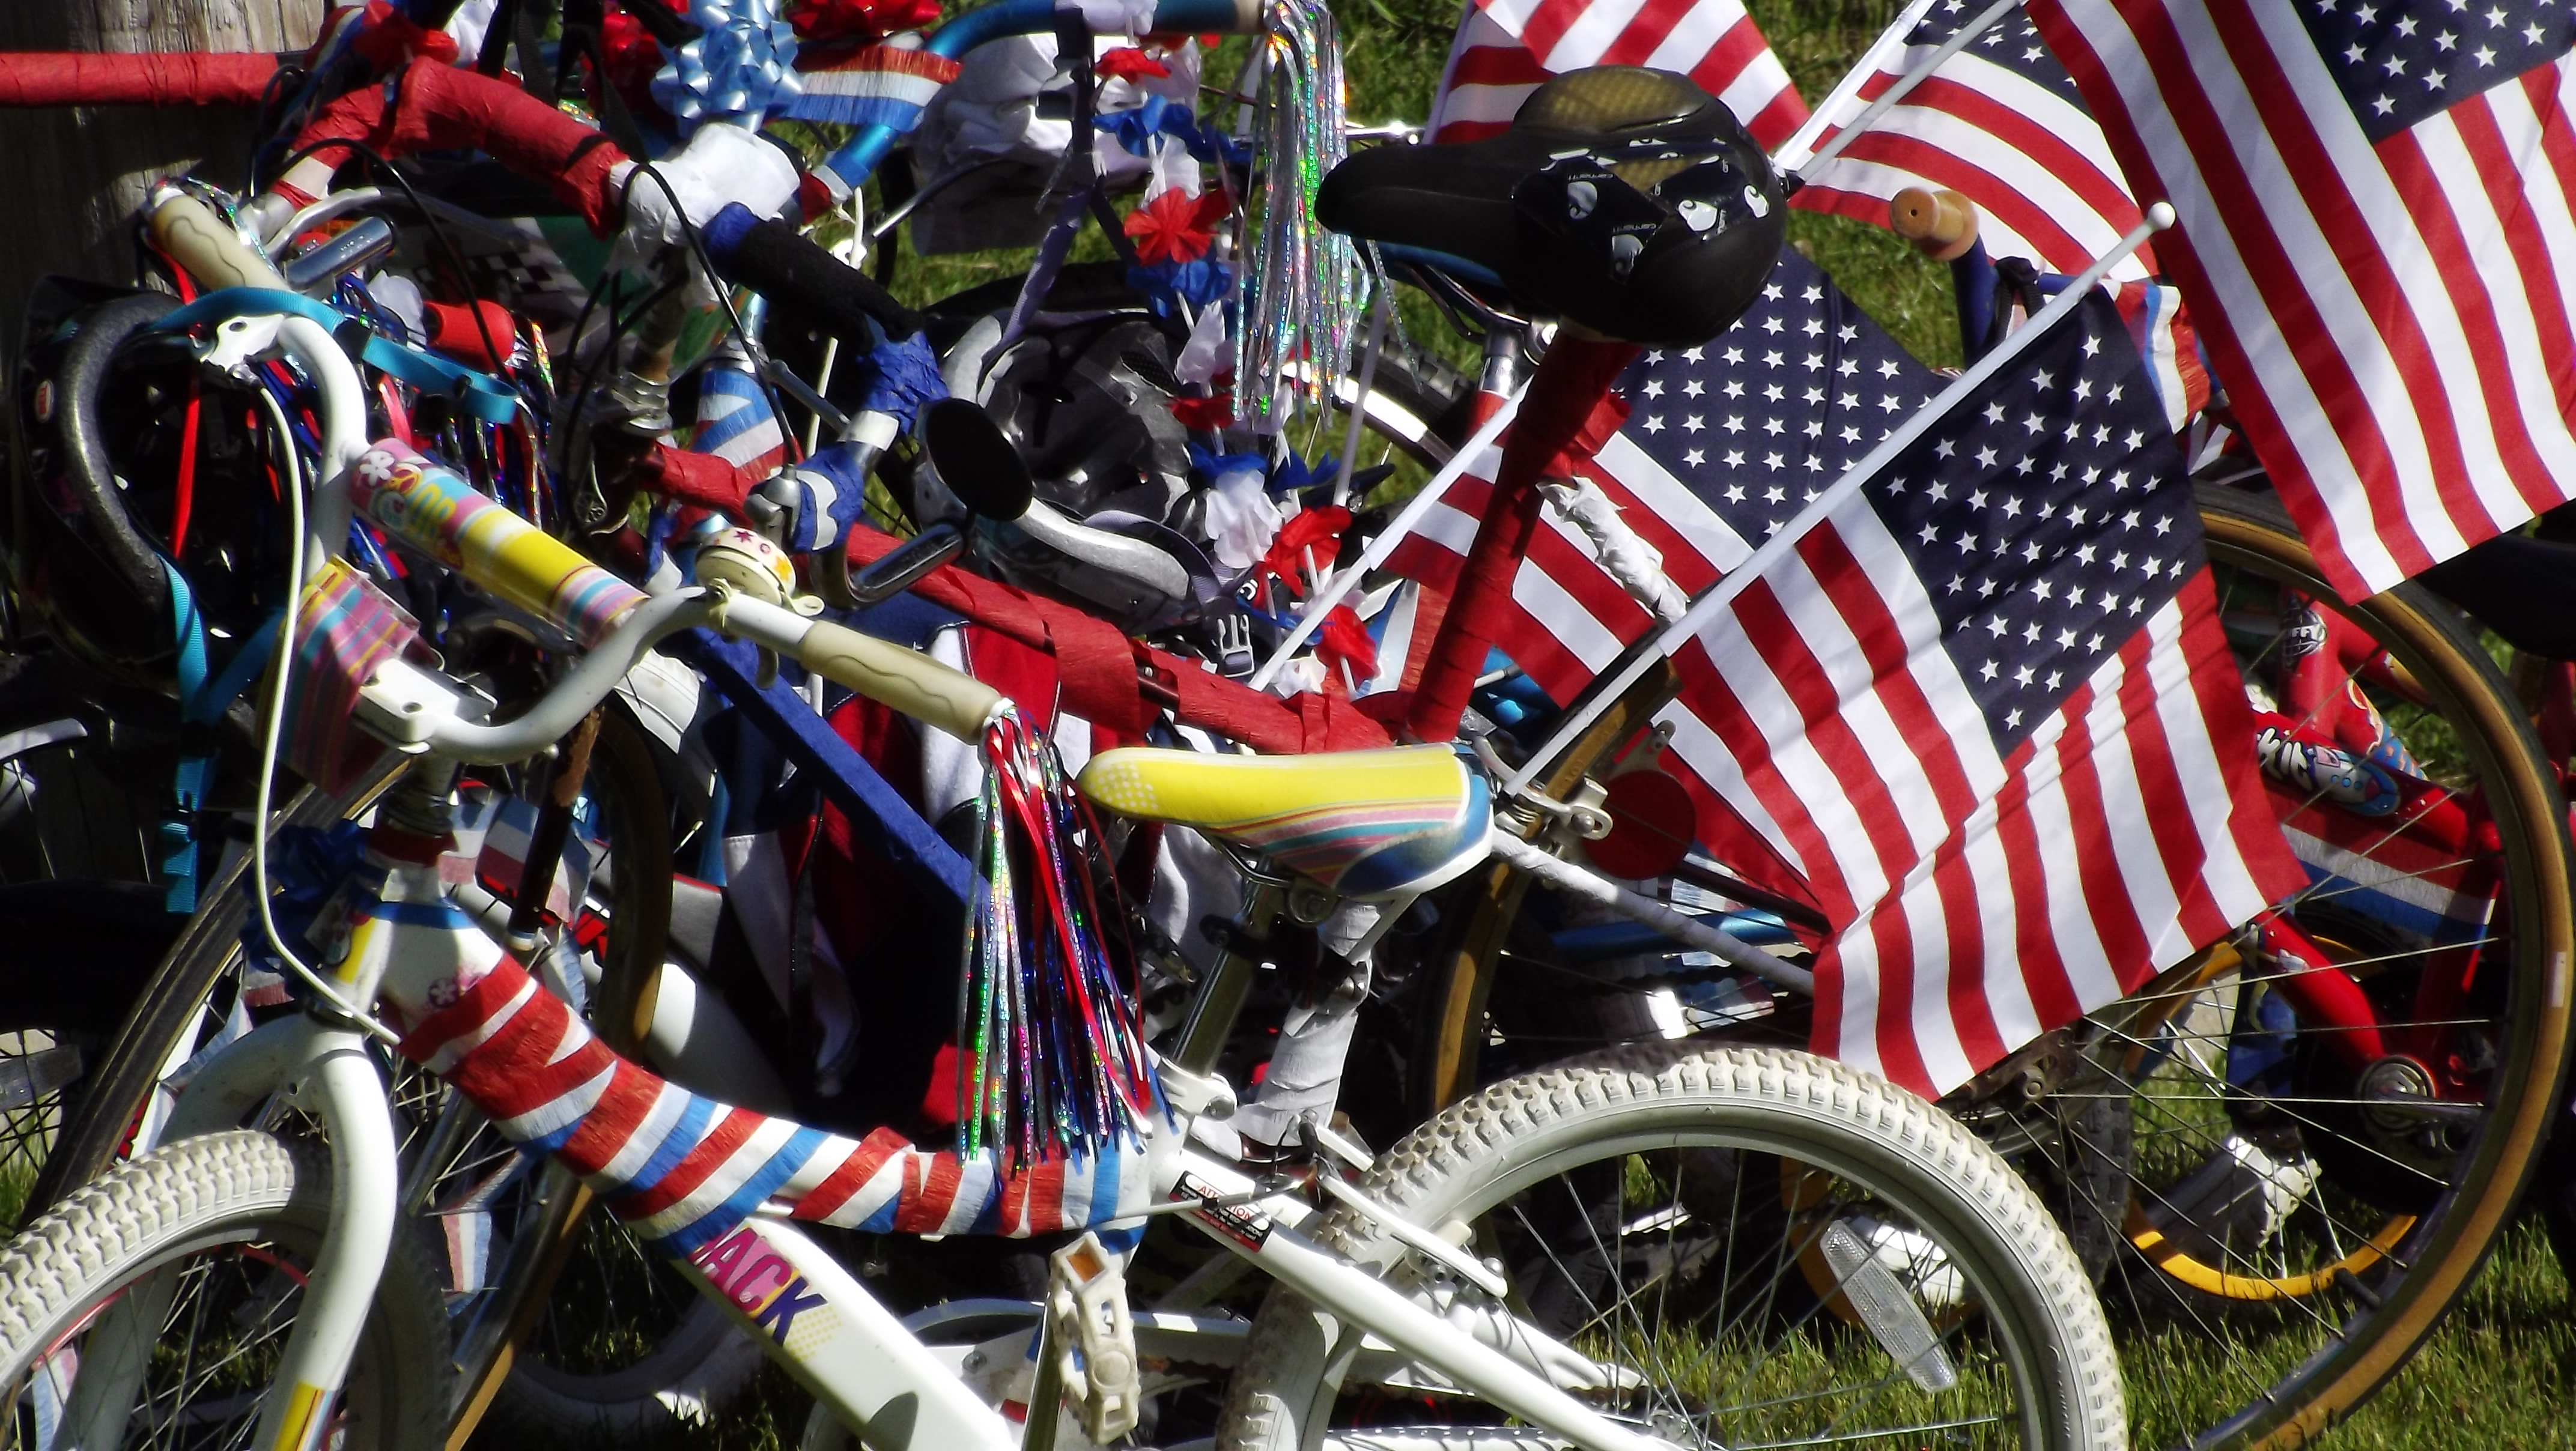 red white and blue decorated bicycles with streamers and flags